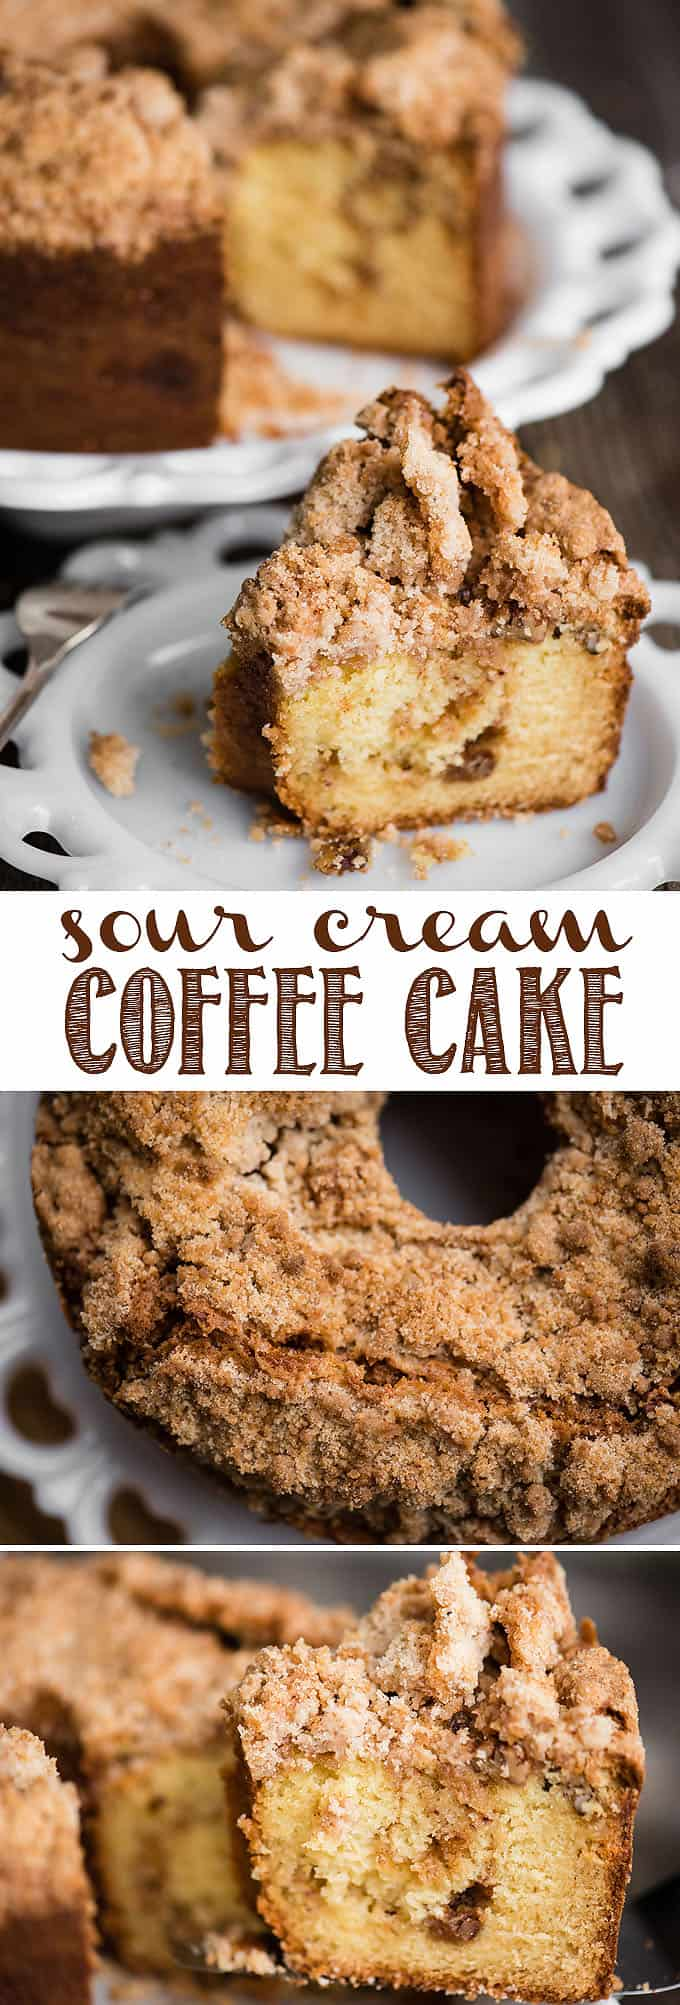 Coffee Bundt Cake With Coffee In The Middle